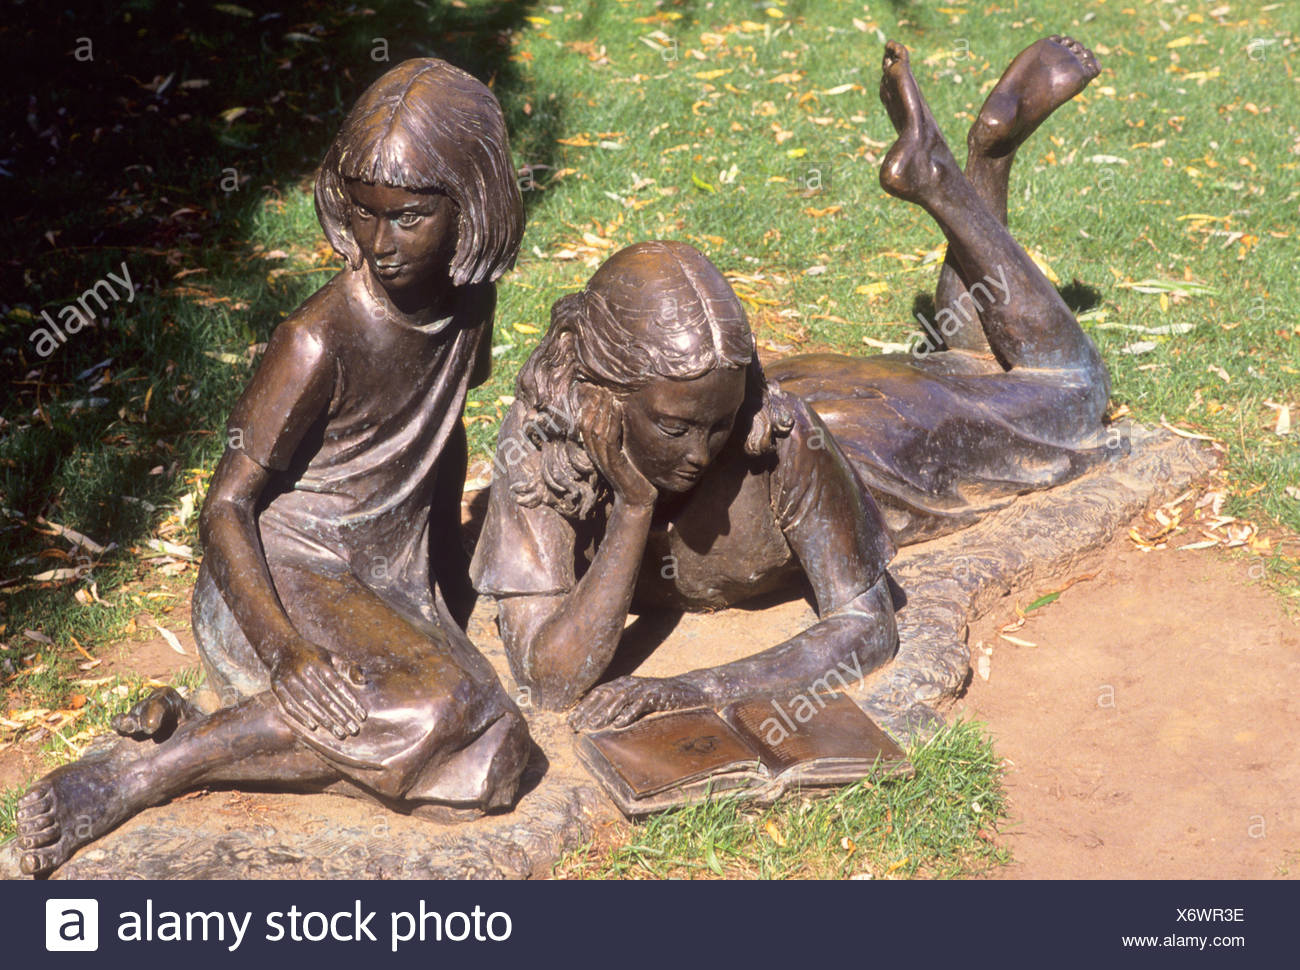 Guildford Alice in Wonderland and sister bronze figures Millmead Lewis Carroll author Edwin Russell sculptor near River Wey - Stock Image